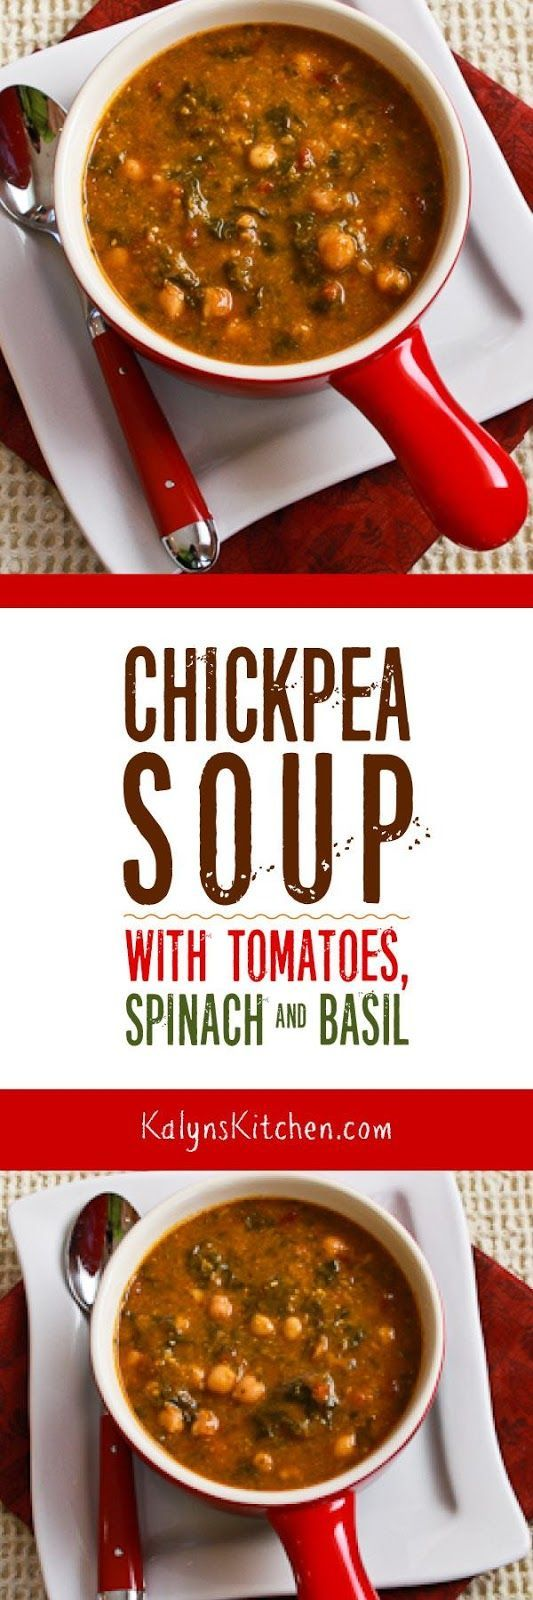 25+ best ideas about Chickpea soup on Pinterest | Recipes ...